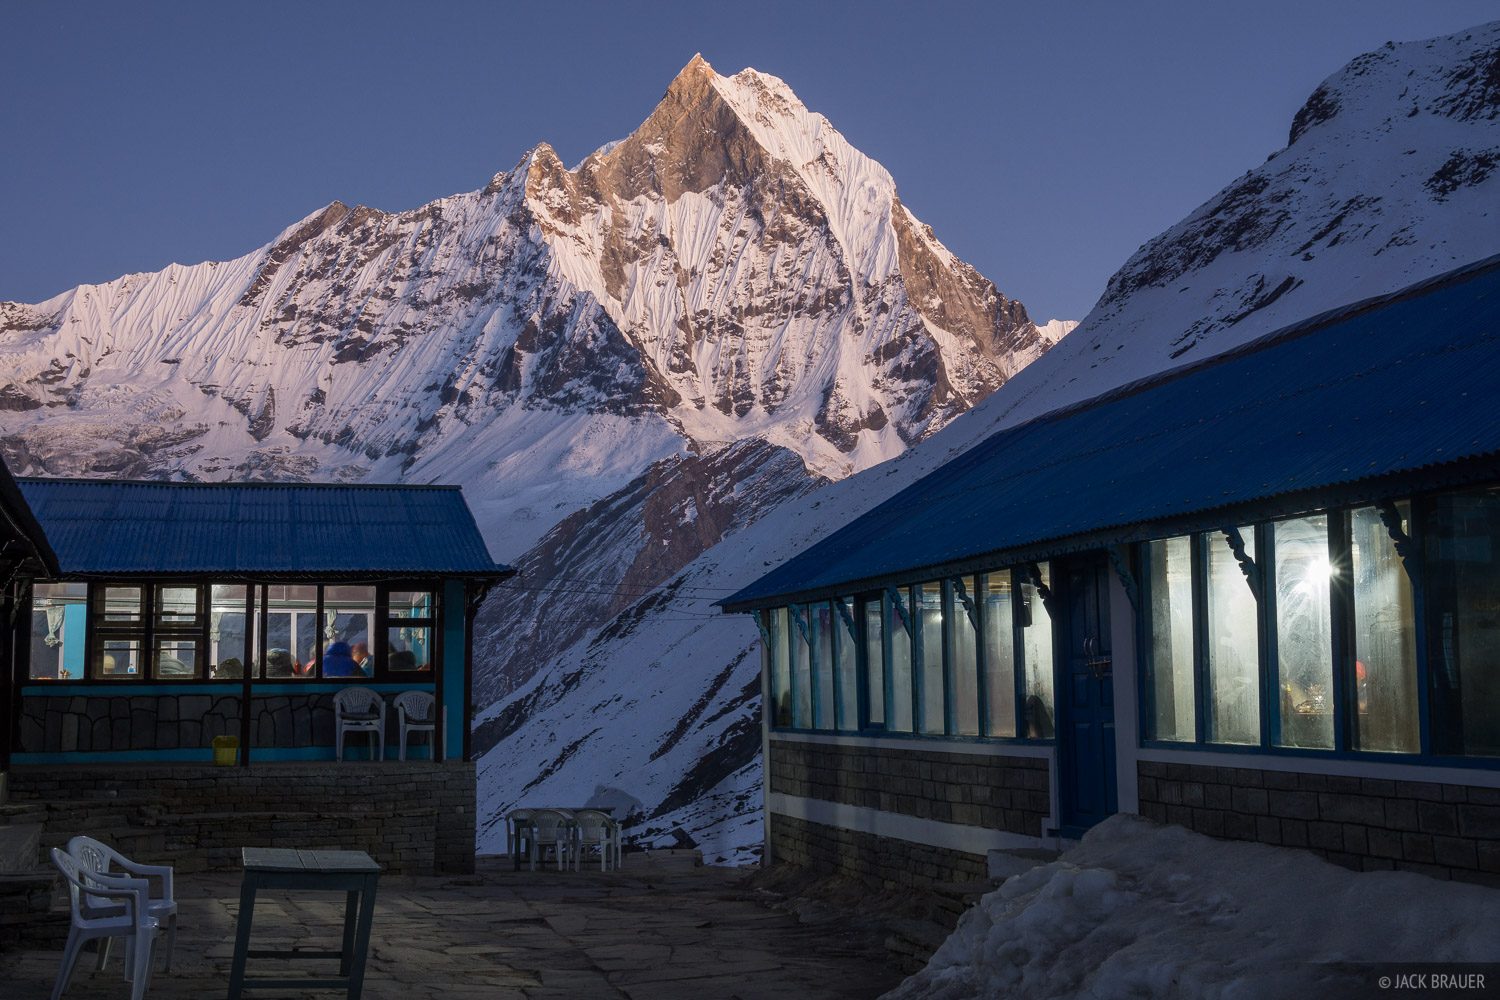 Annapurna Base Camp,Himalaya,Machhapuchhre,Nepal, photo